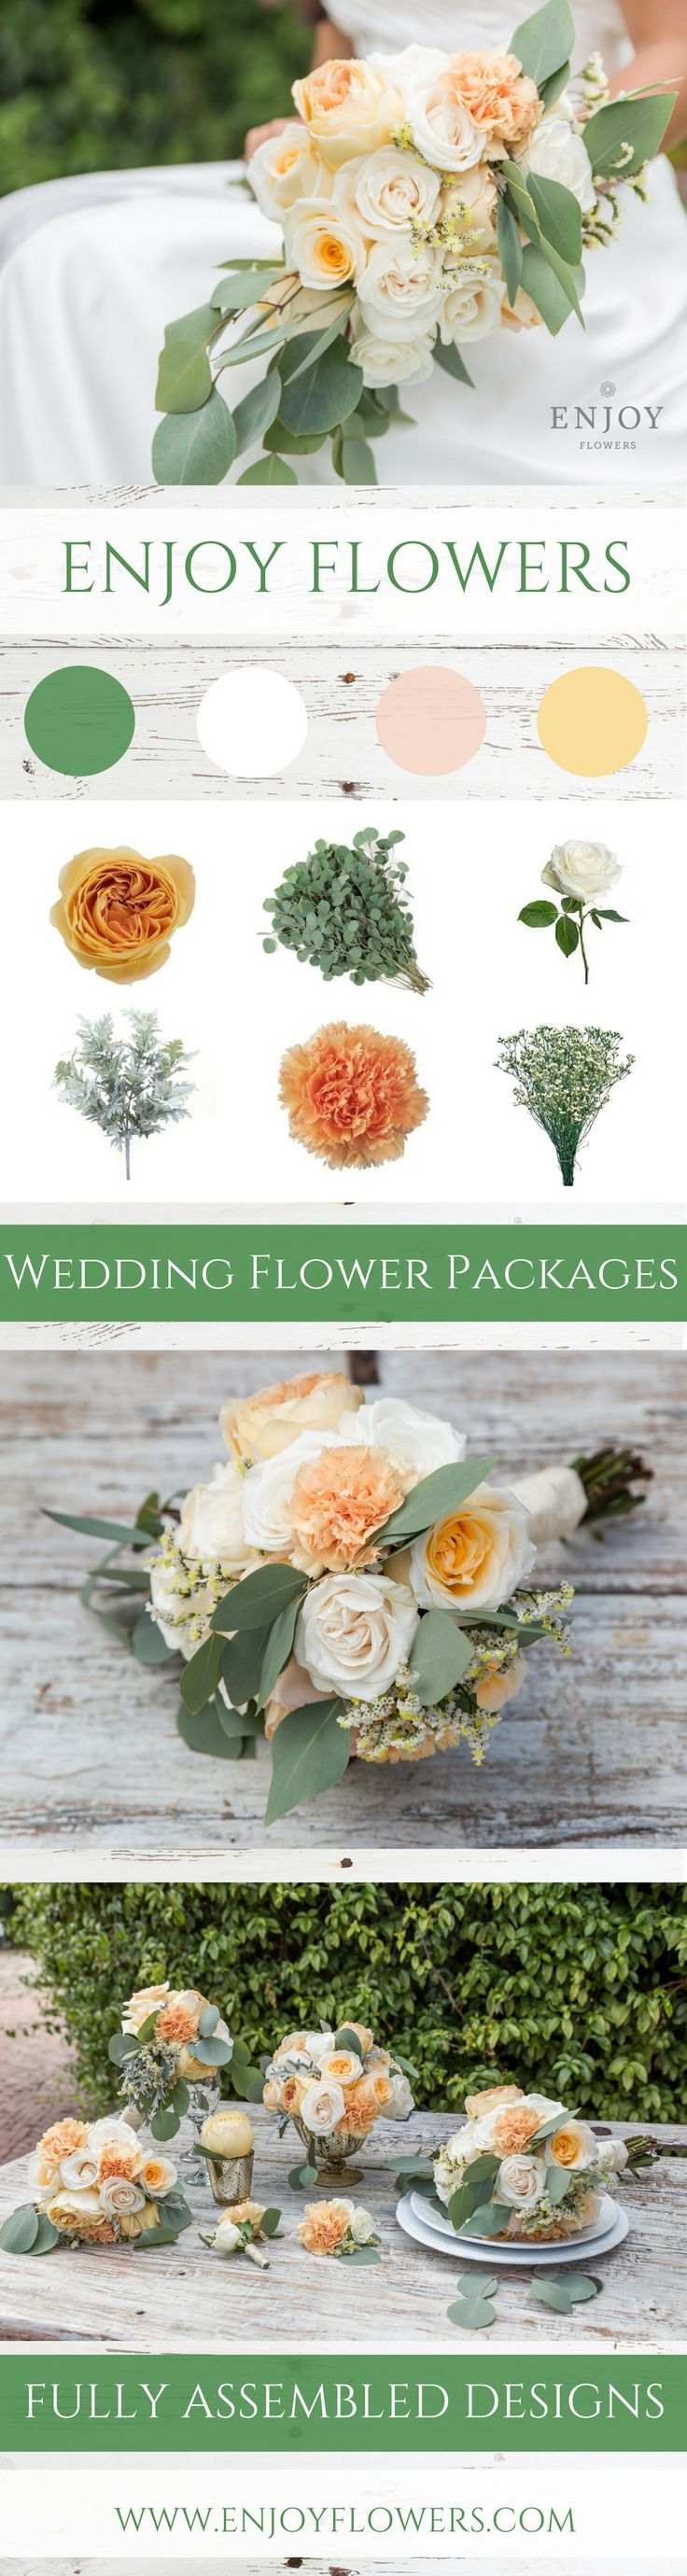 2018 Wedding Trends. DIY Wholeslae Wedding Flowers Packages. Fully Assembled Bouquets, Boutonnieres & Centerpieces only $350 for TEN PIECES! Overnight Shipping! #bouquet #weddingflowers #DIYWedding #centerpieces #boutonnieres #DIYBride #weddingtrends